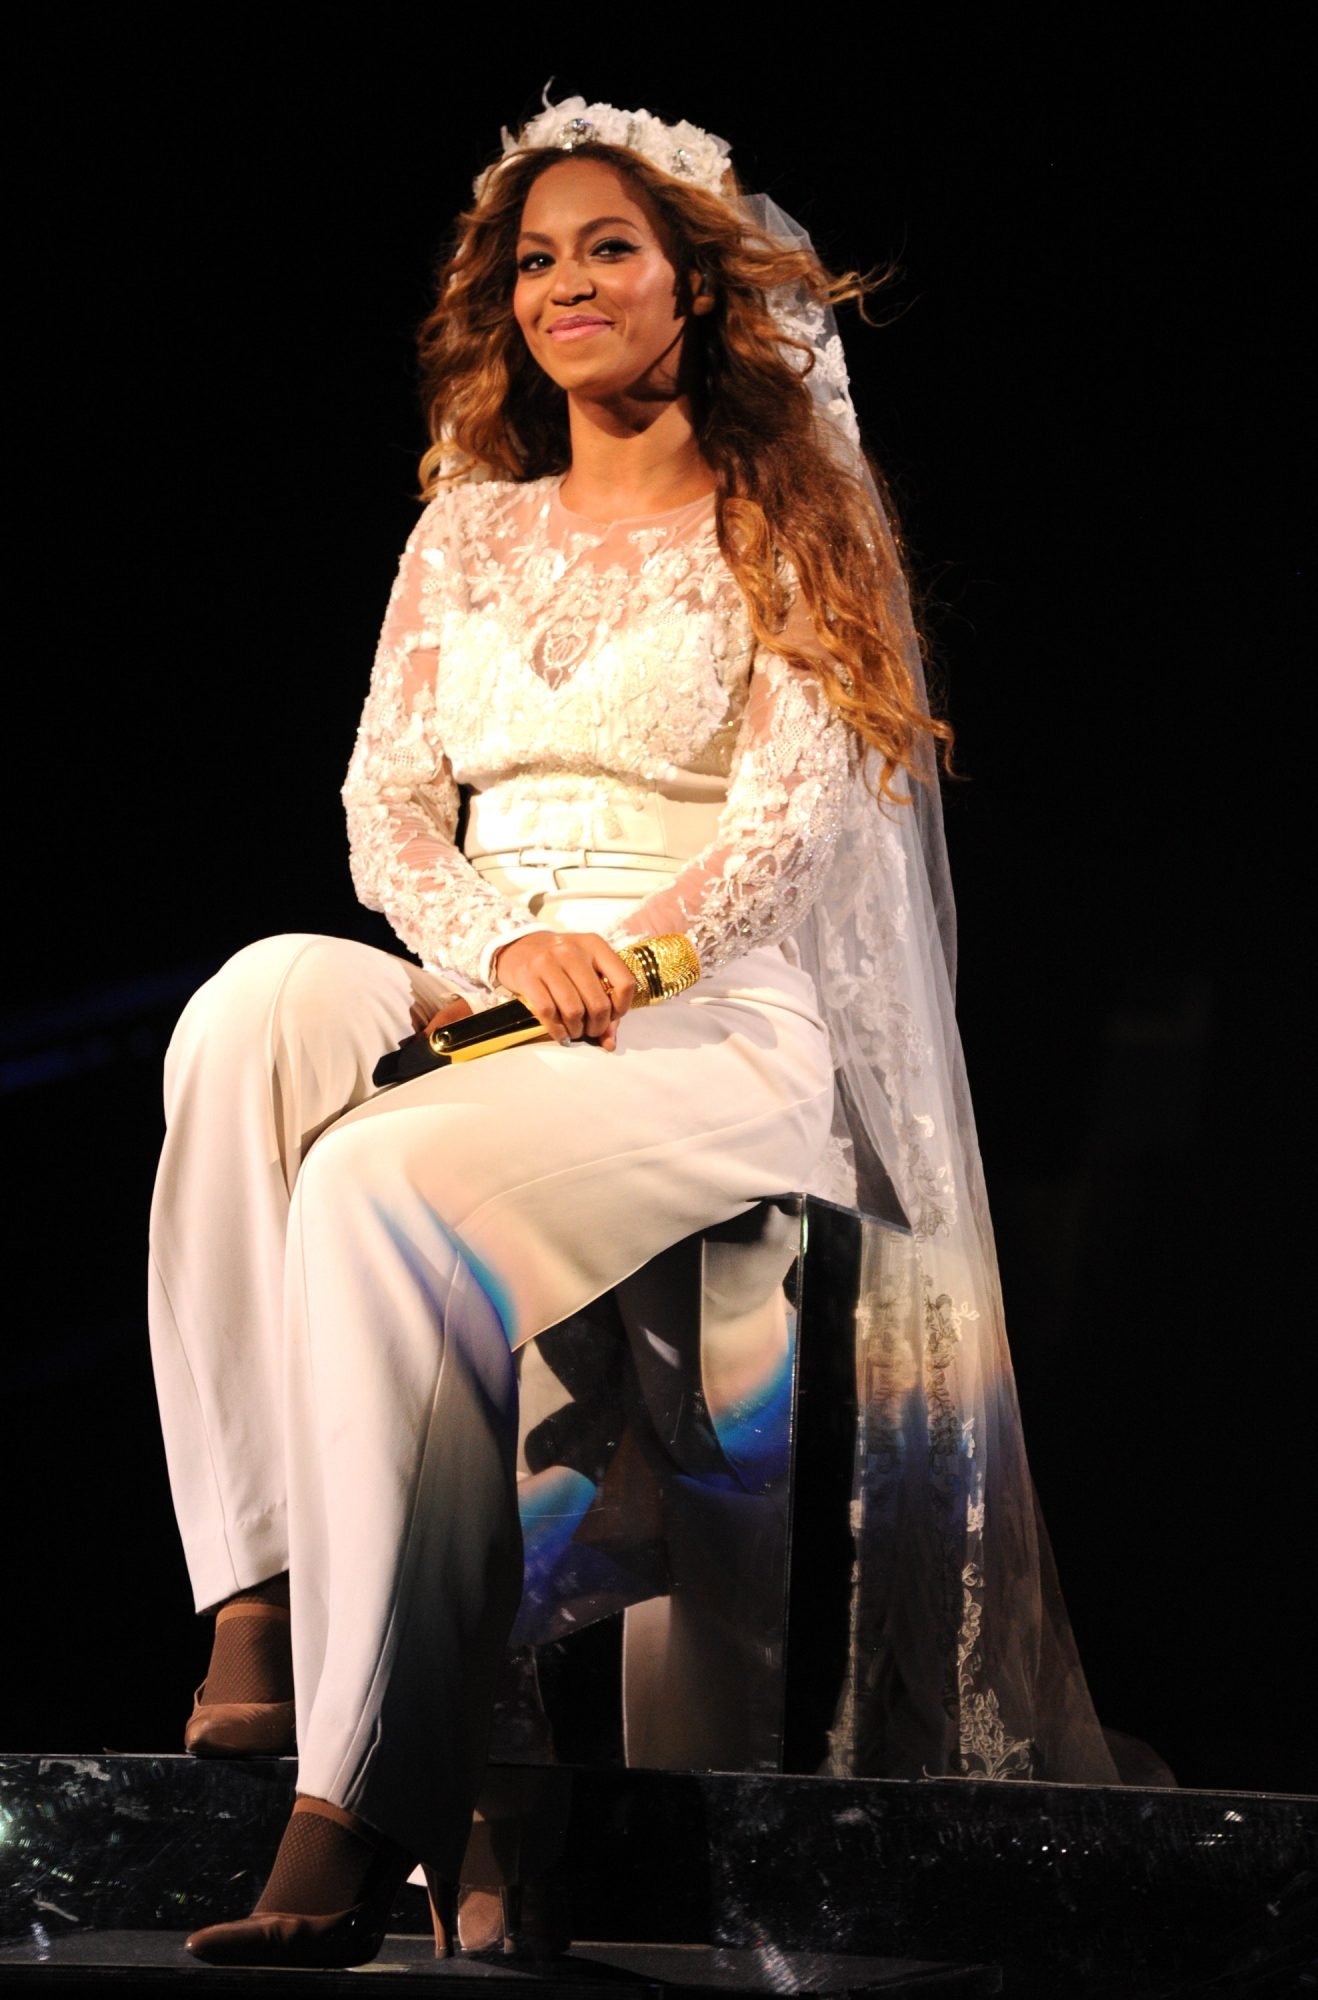 Beyoncé wearing a bridal jumpsuit during her On the Run tour